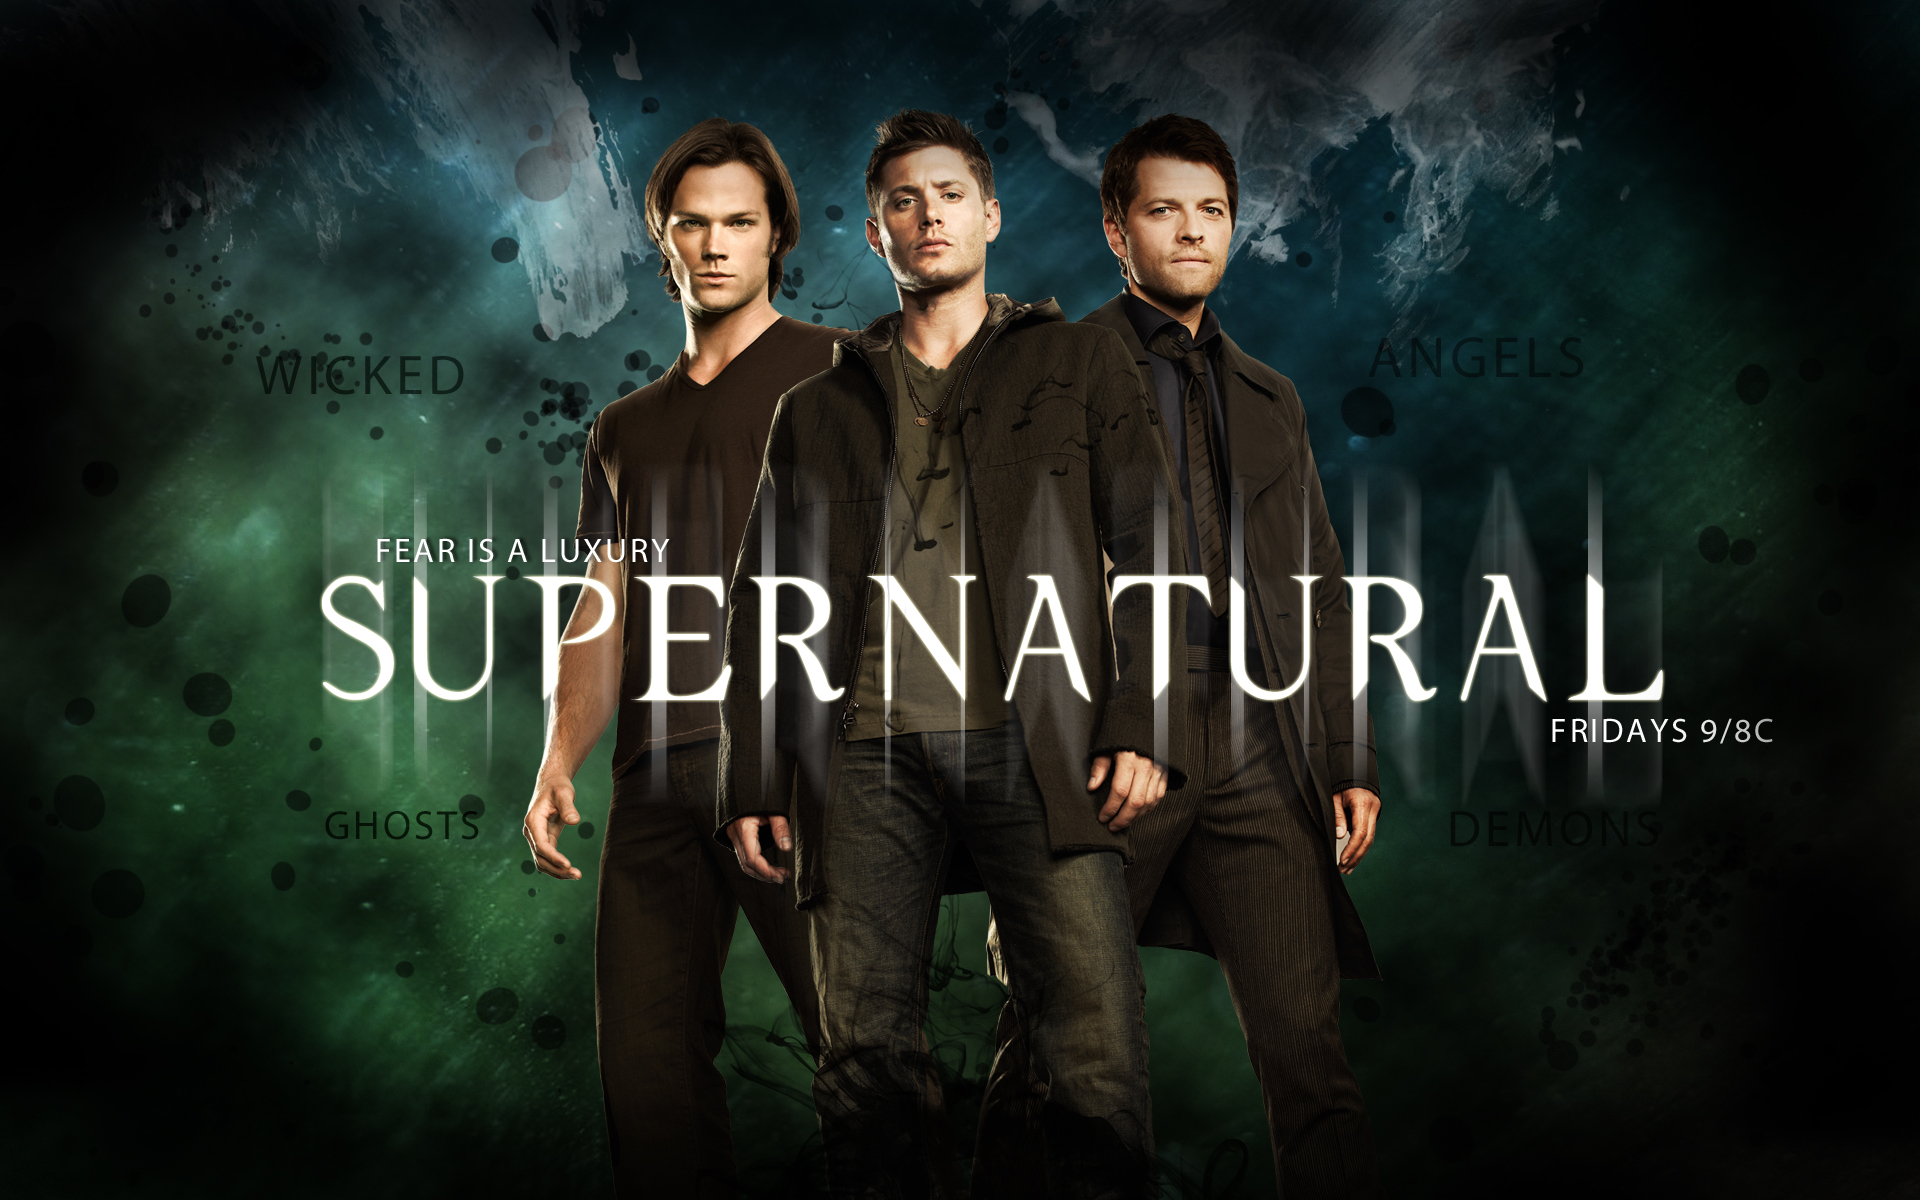 supernatural-wallpapers-hd-mobile | wallpaper.wiki